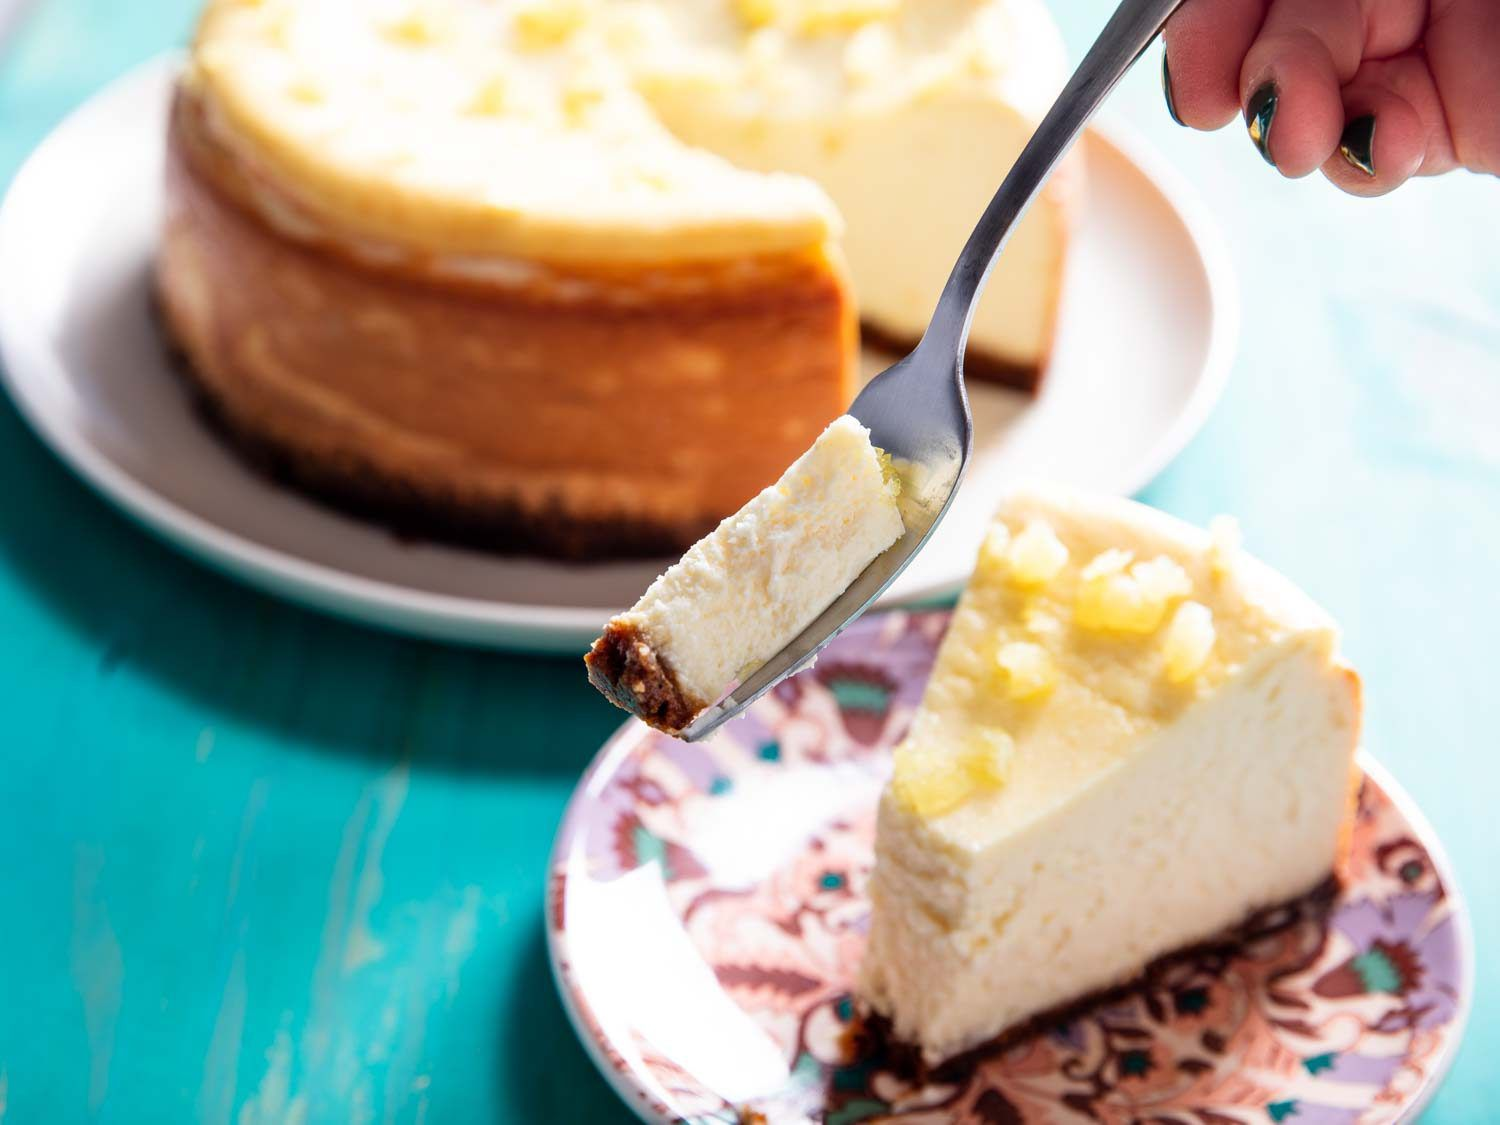 Taking a bite from a slice of lemon cheesecake